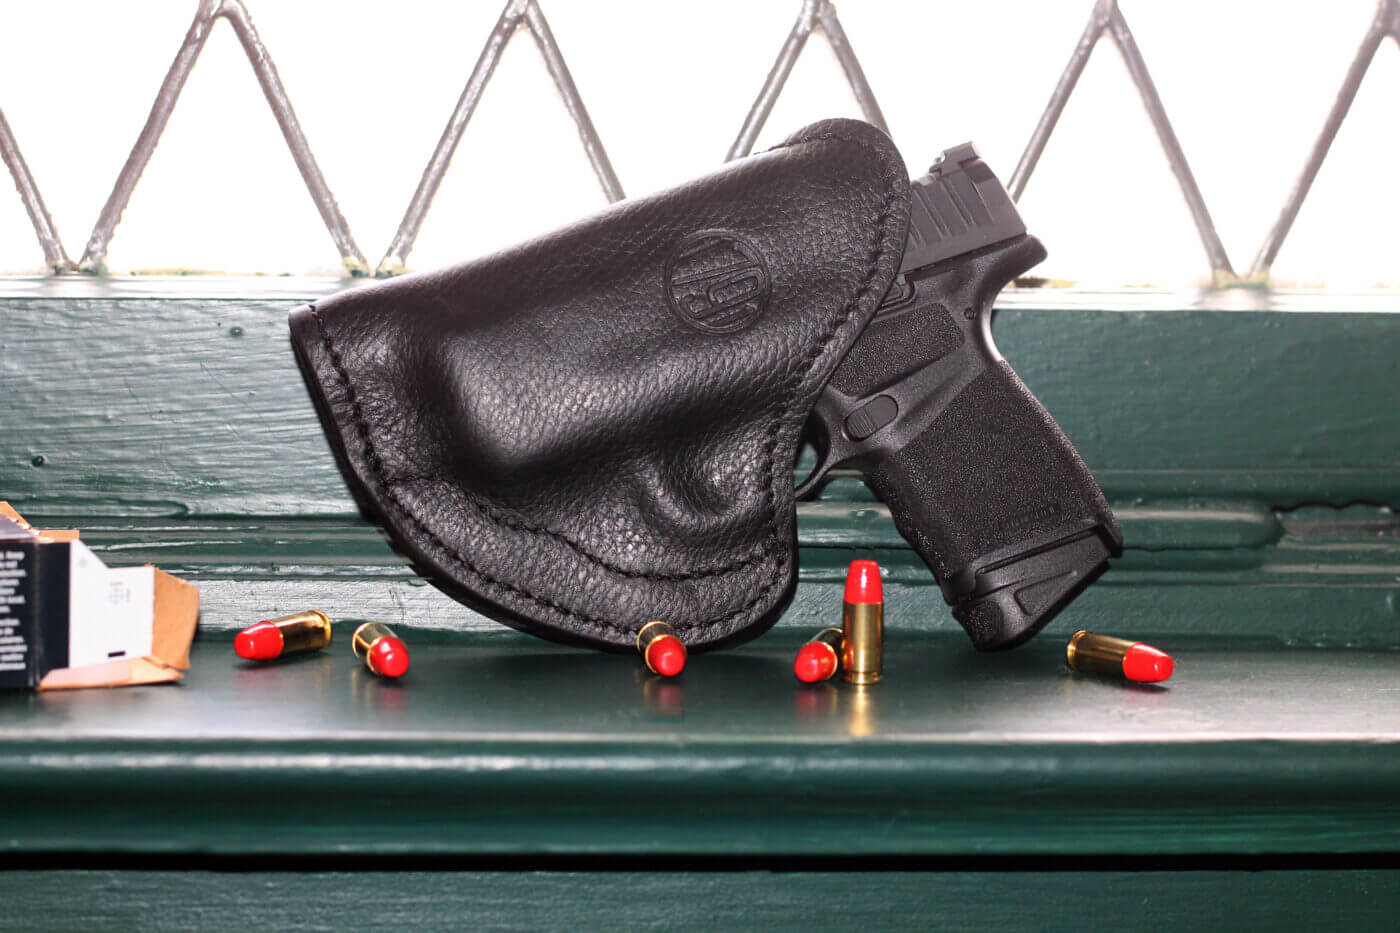 1791 Gunleather holster with Springfield Hellcat pistol inserted